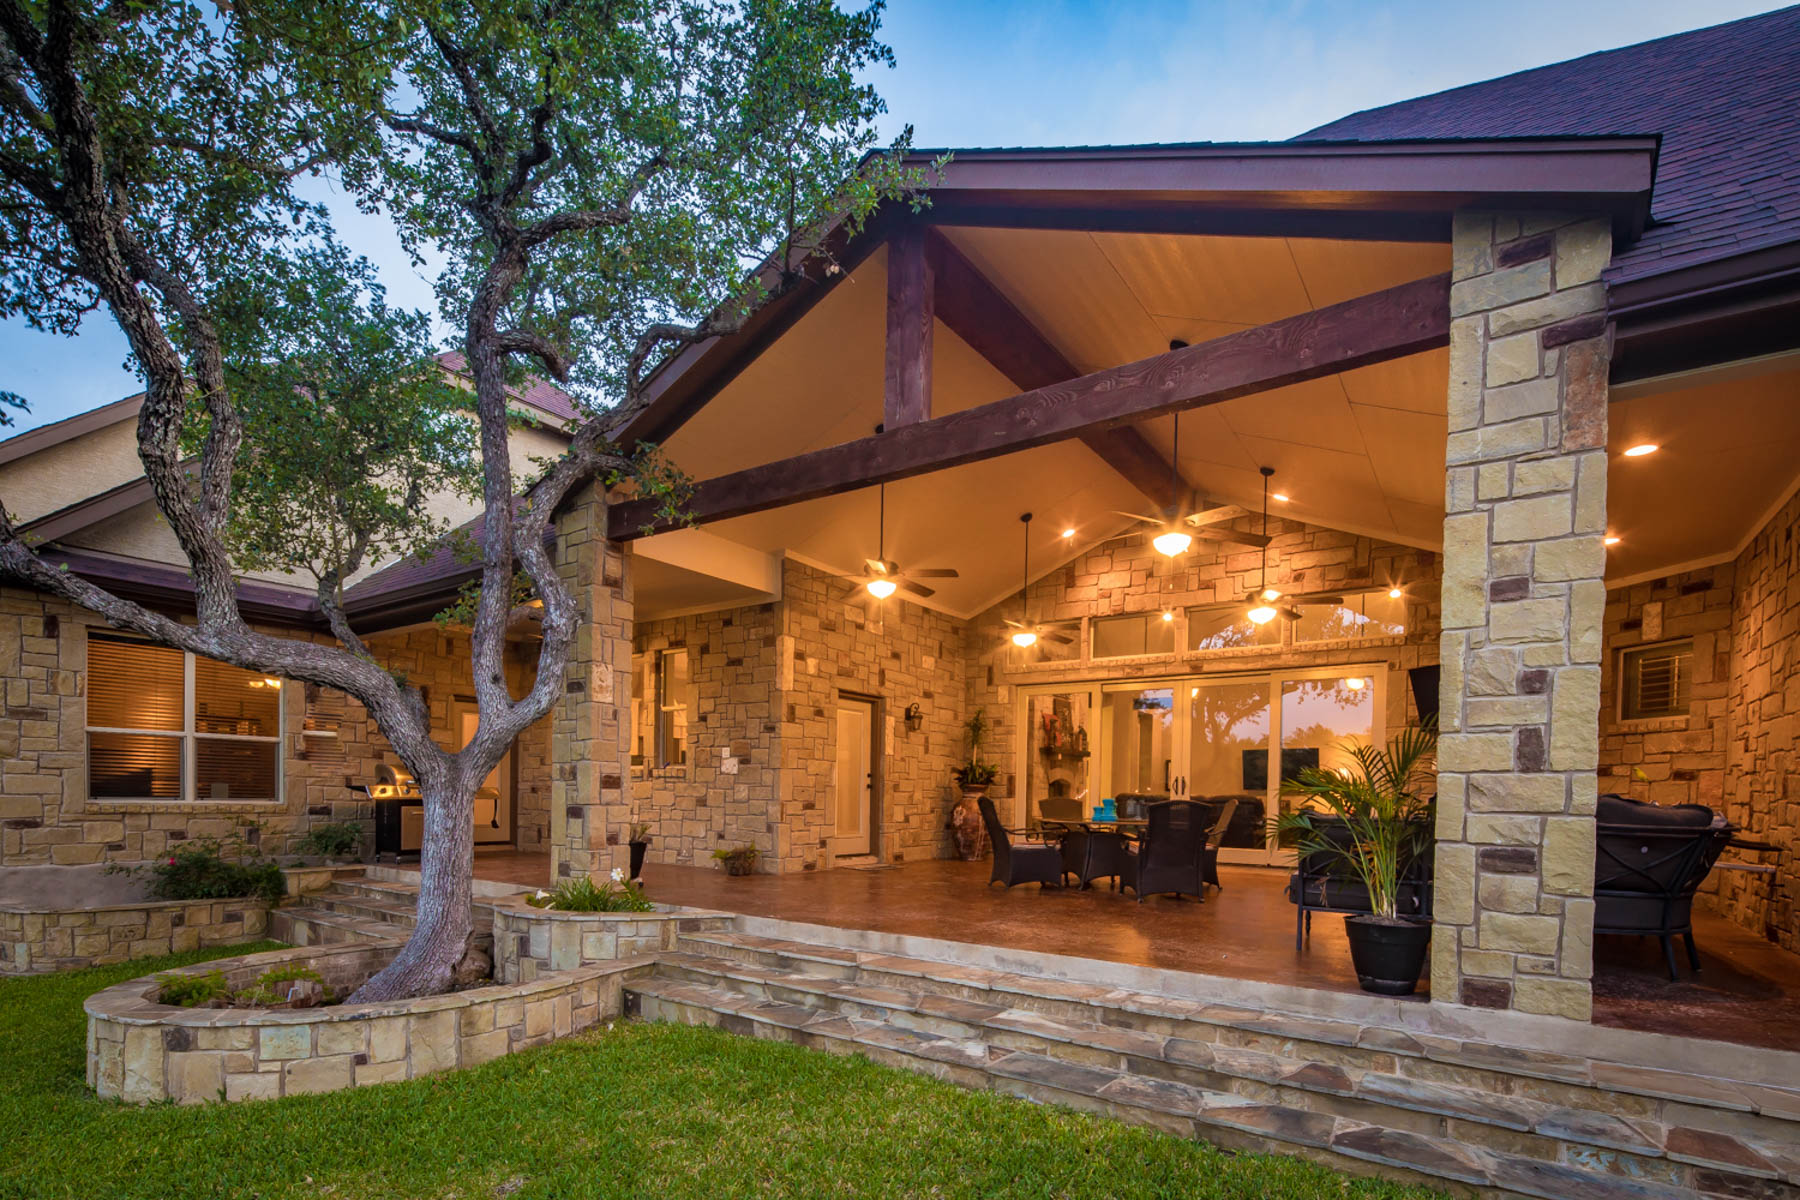 Additional photo for property listing at Gorgeous Custom Home on Large Hill Country Lot 840 Haven Point Loop New Braunfels, Texas 78132 United States